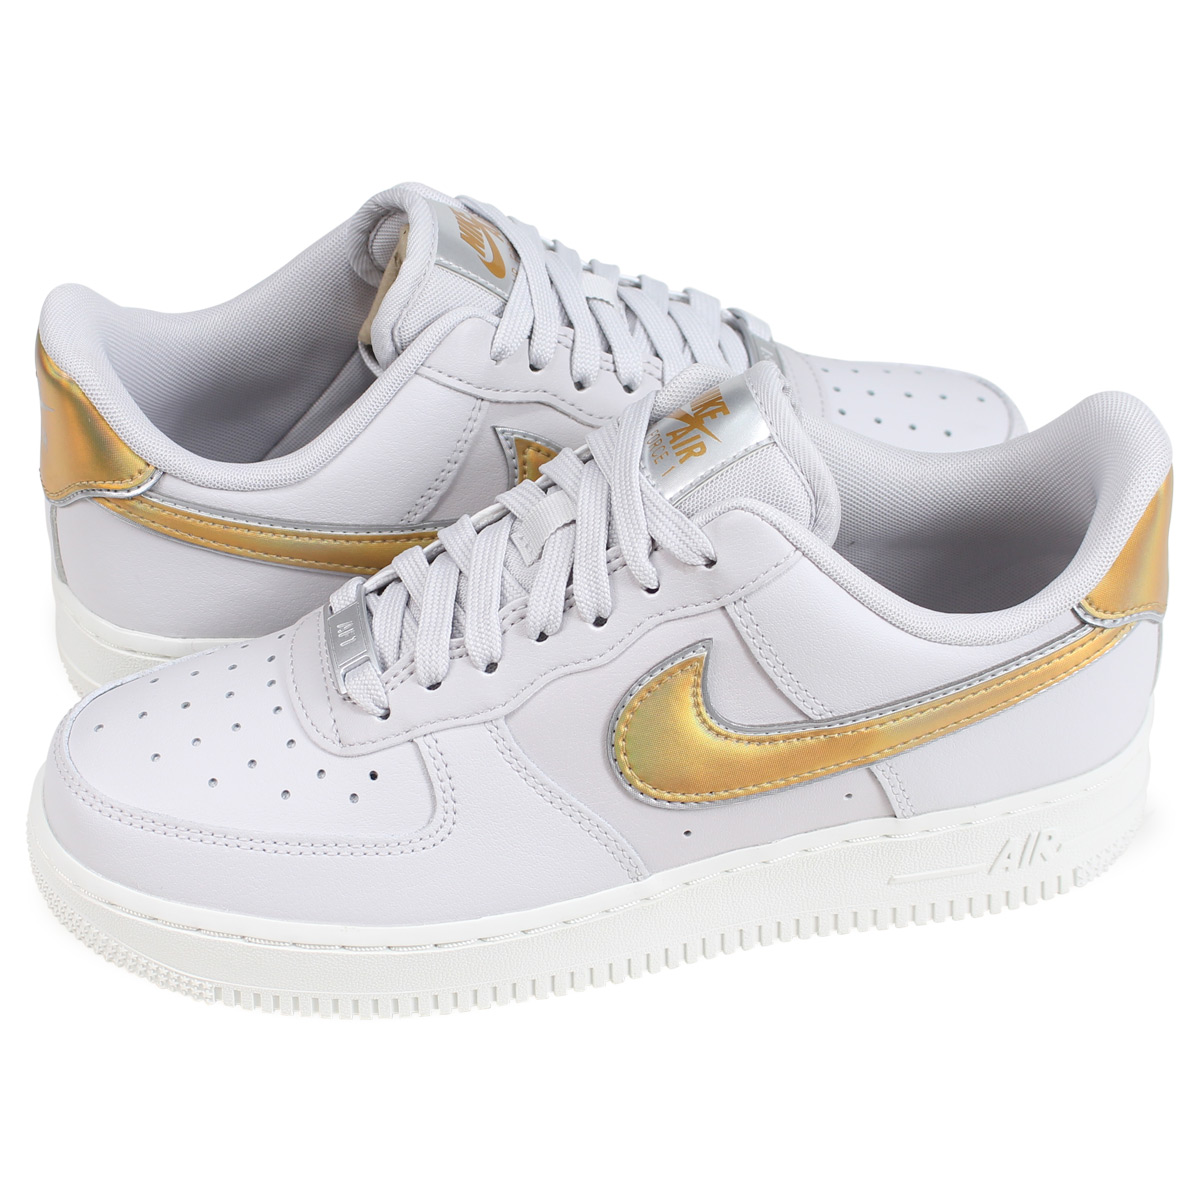 quality design 40840 9bee0  brand NIKE getting high popularity from sneakers freak